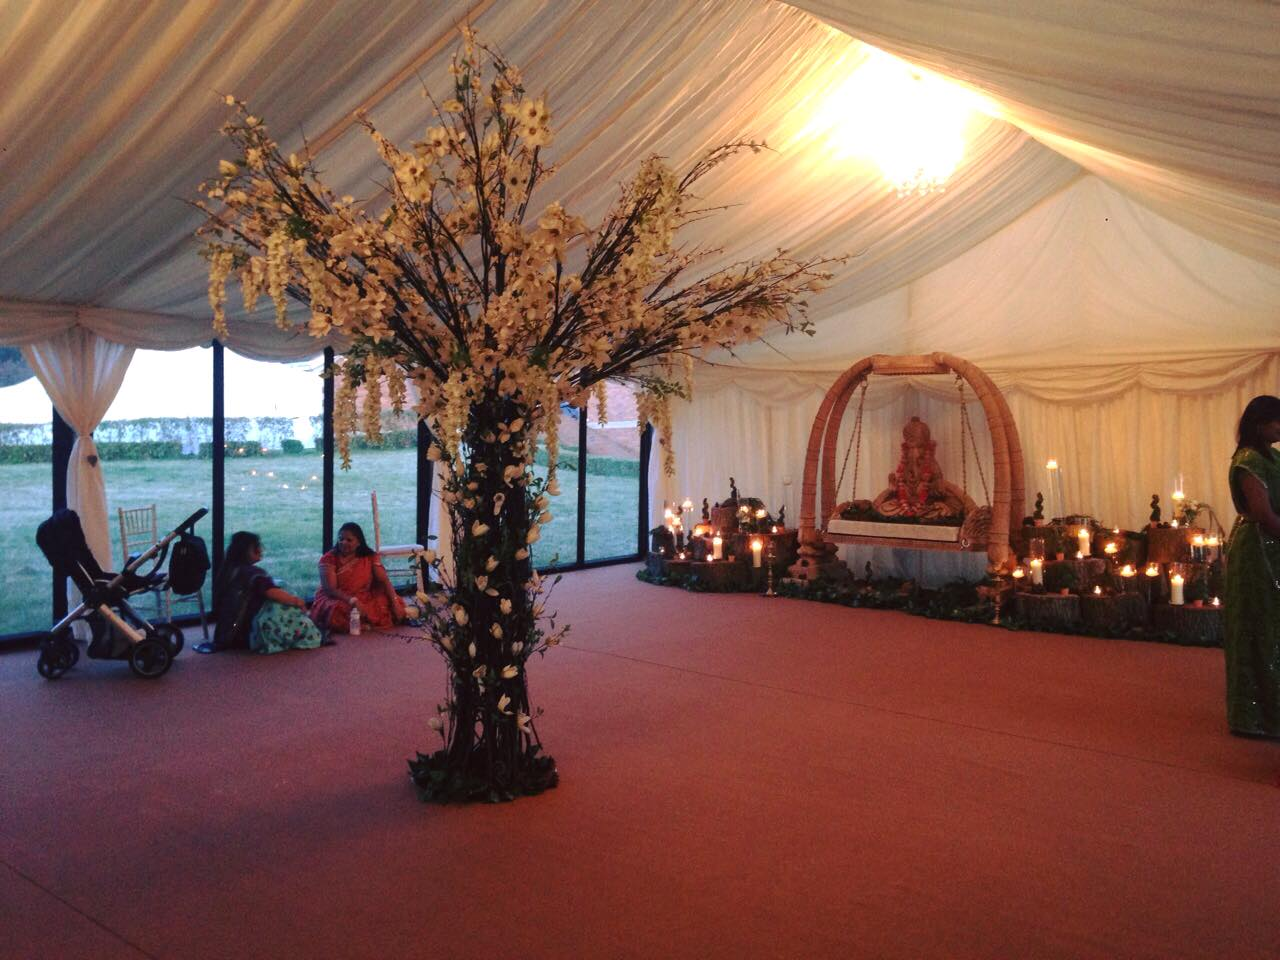 London Wedding Marquee Hire Entrance London Wedding Marquee Hire Hall ... & Start of The Big Fat Indian Wedding - Marquee by Bees Marquees ...